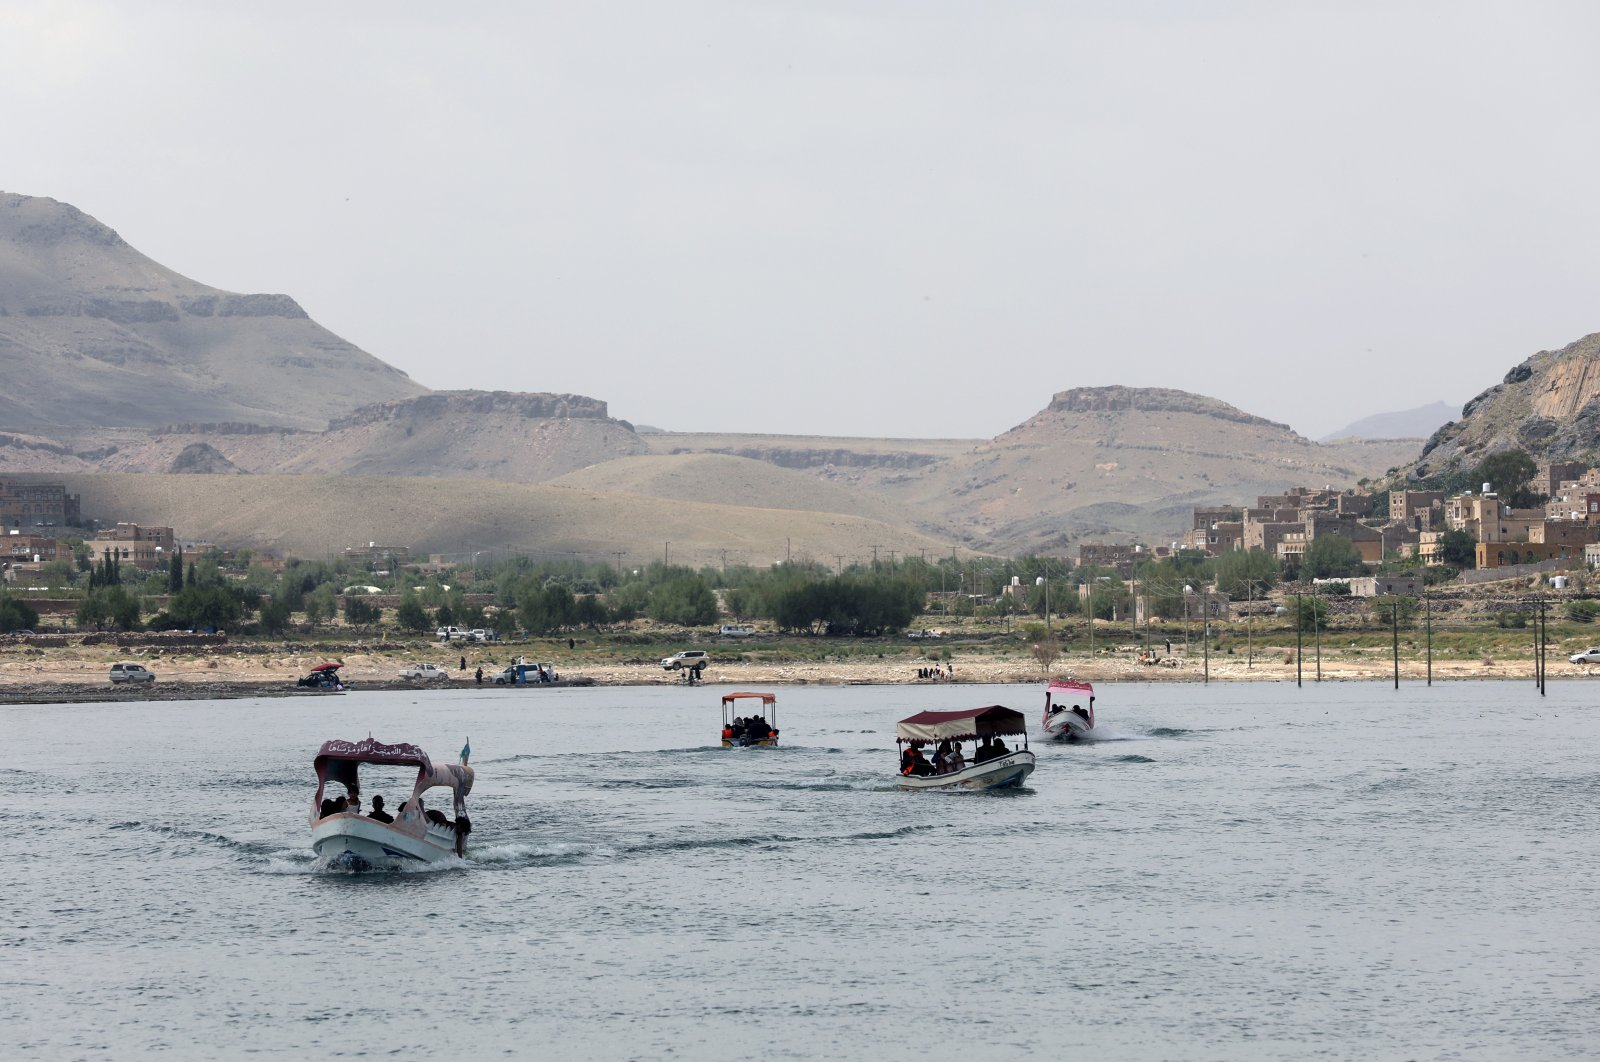 People ride boats during an excursion at a dam in Sayyan near Sanaa, Yemen, May 16, 2021. (Reuters Photo)